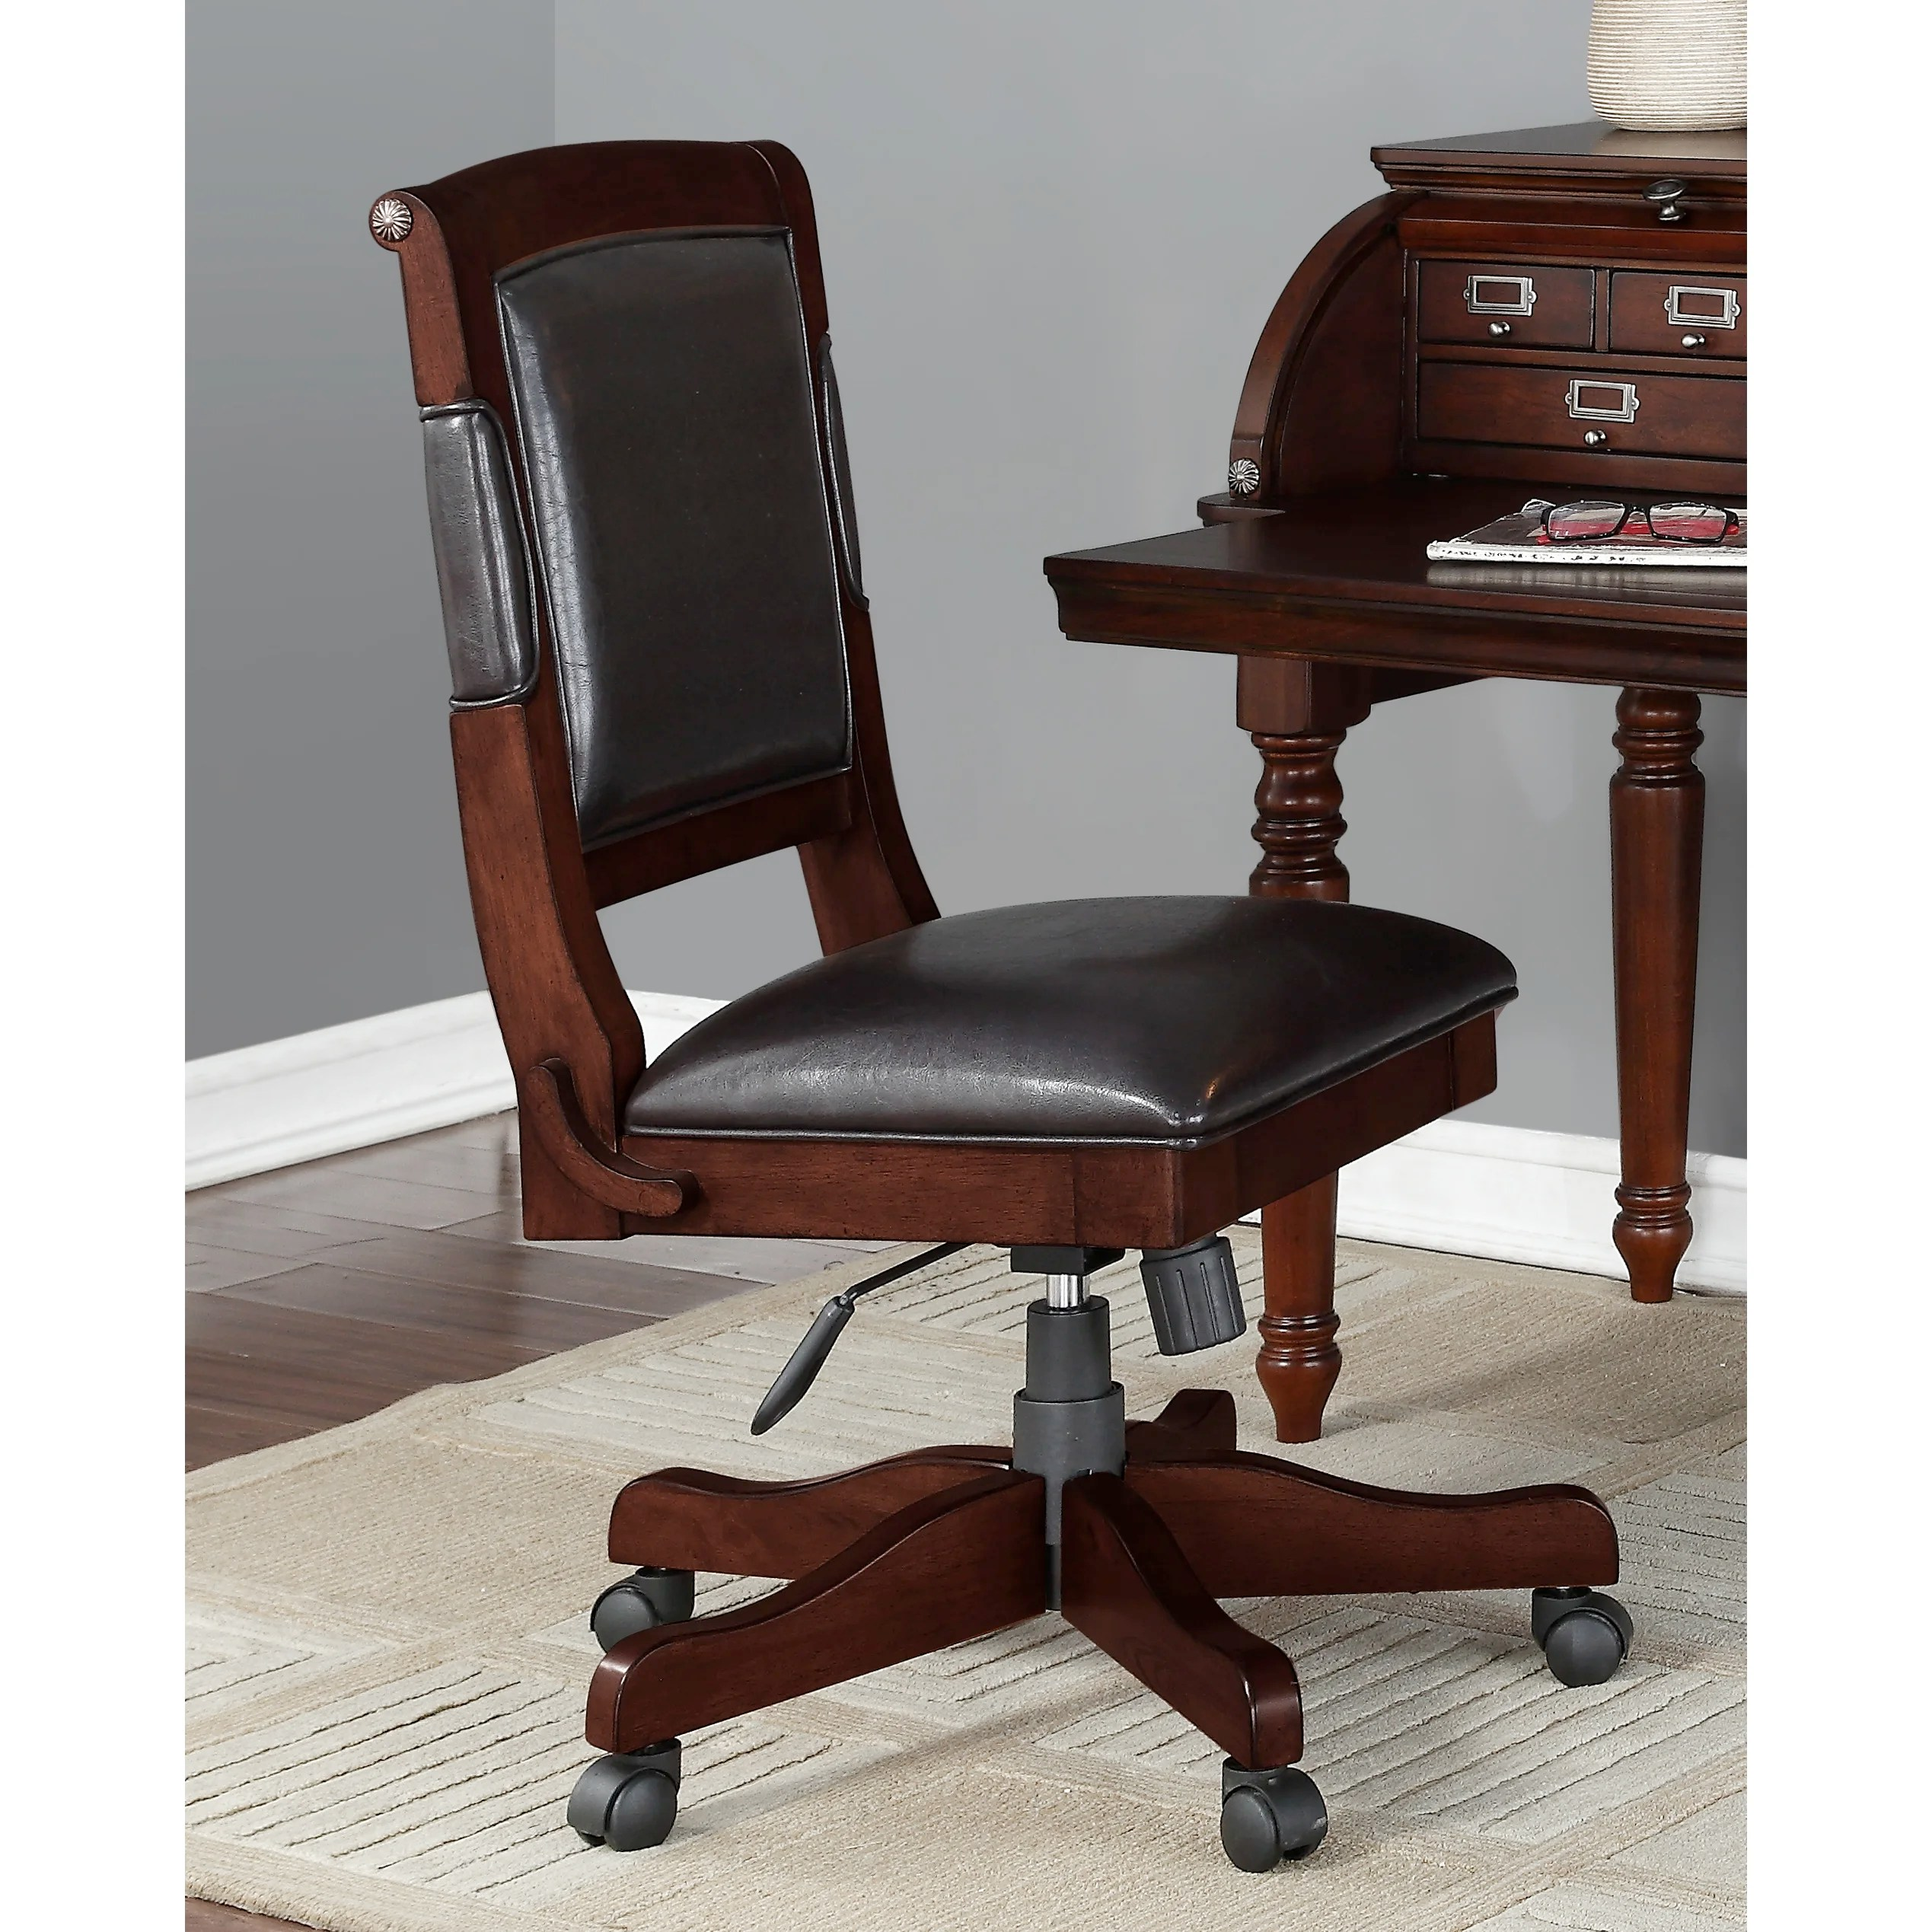 Bankers Chairs Turnkey Llc Oxford Bankers Chair And Reviews Wayfair